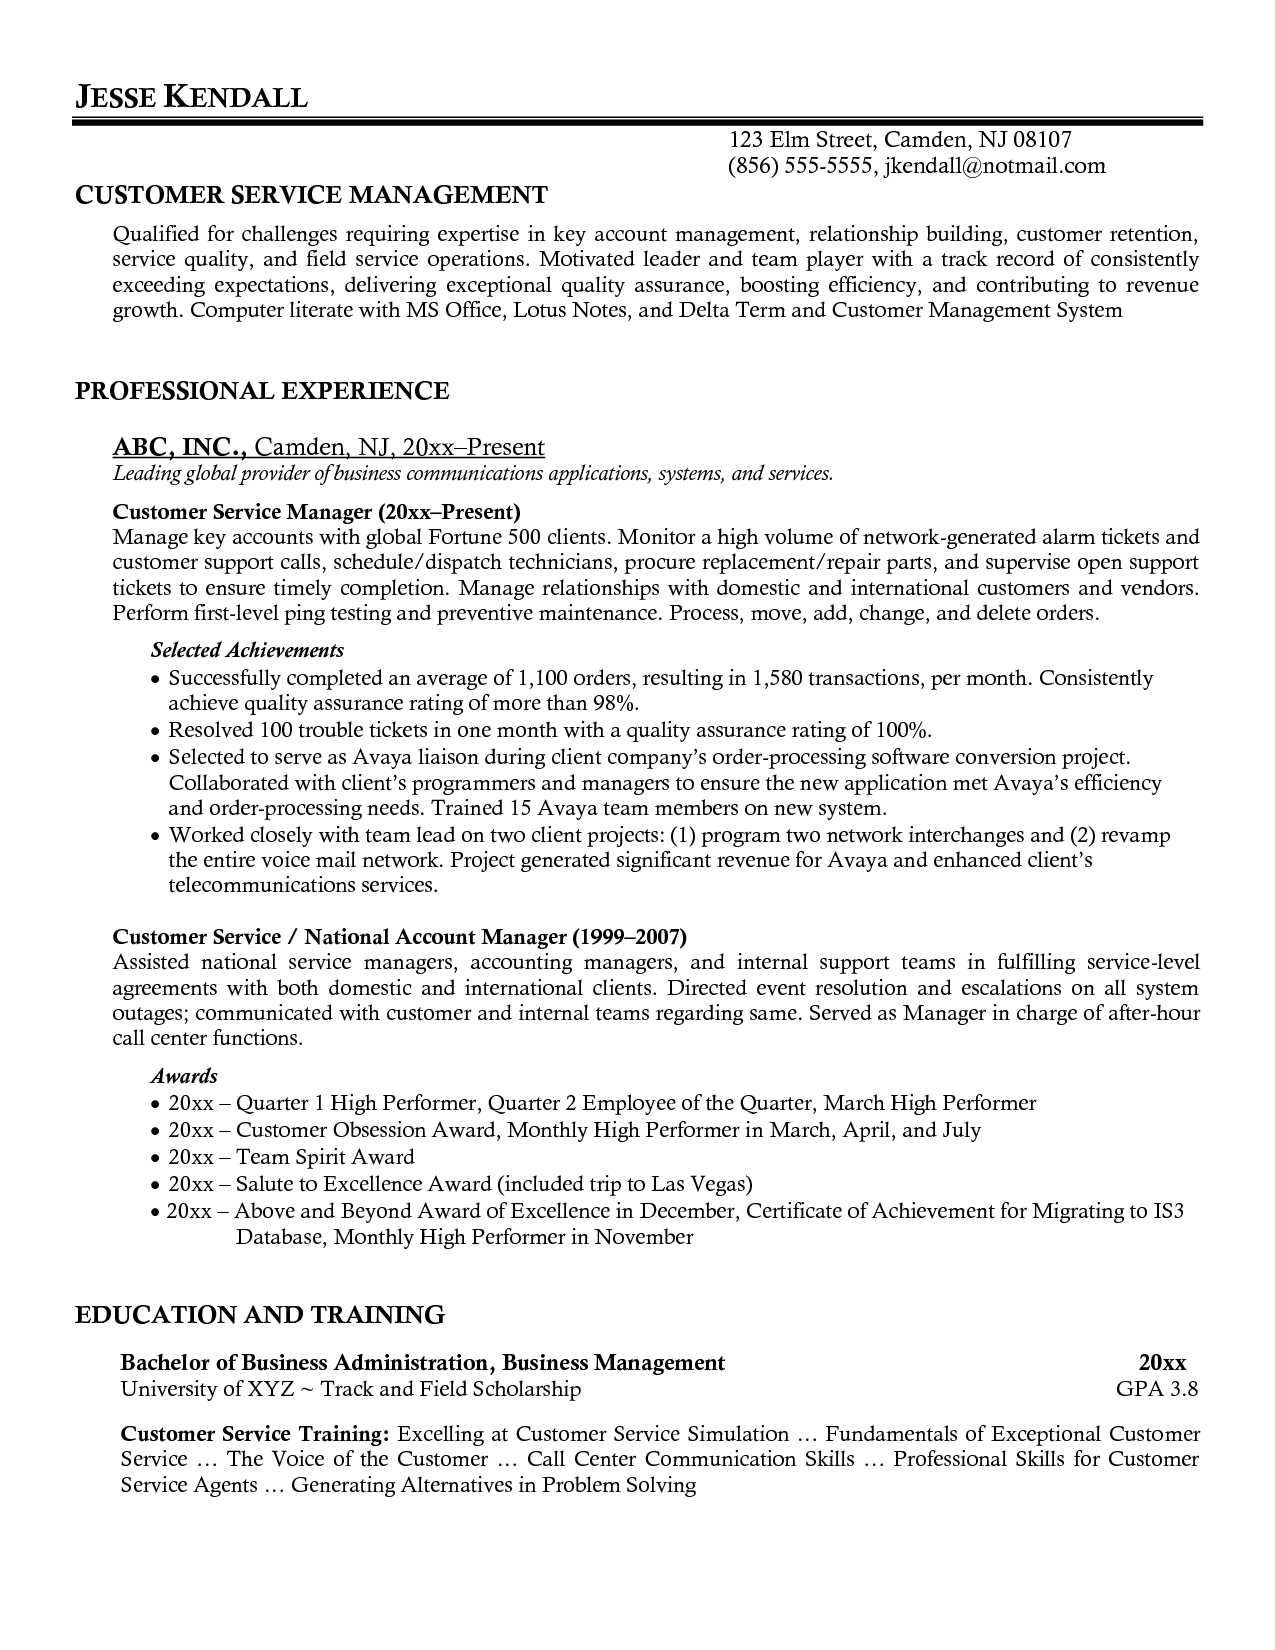 resume Resume Examples For Customer Service Manager customer service manager resume httpwww resumecareer info energy broker sample business proposal letter example military examples transition thumb template